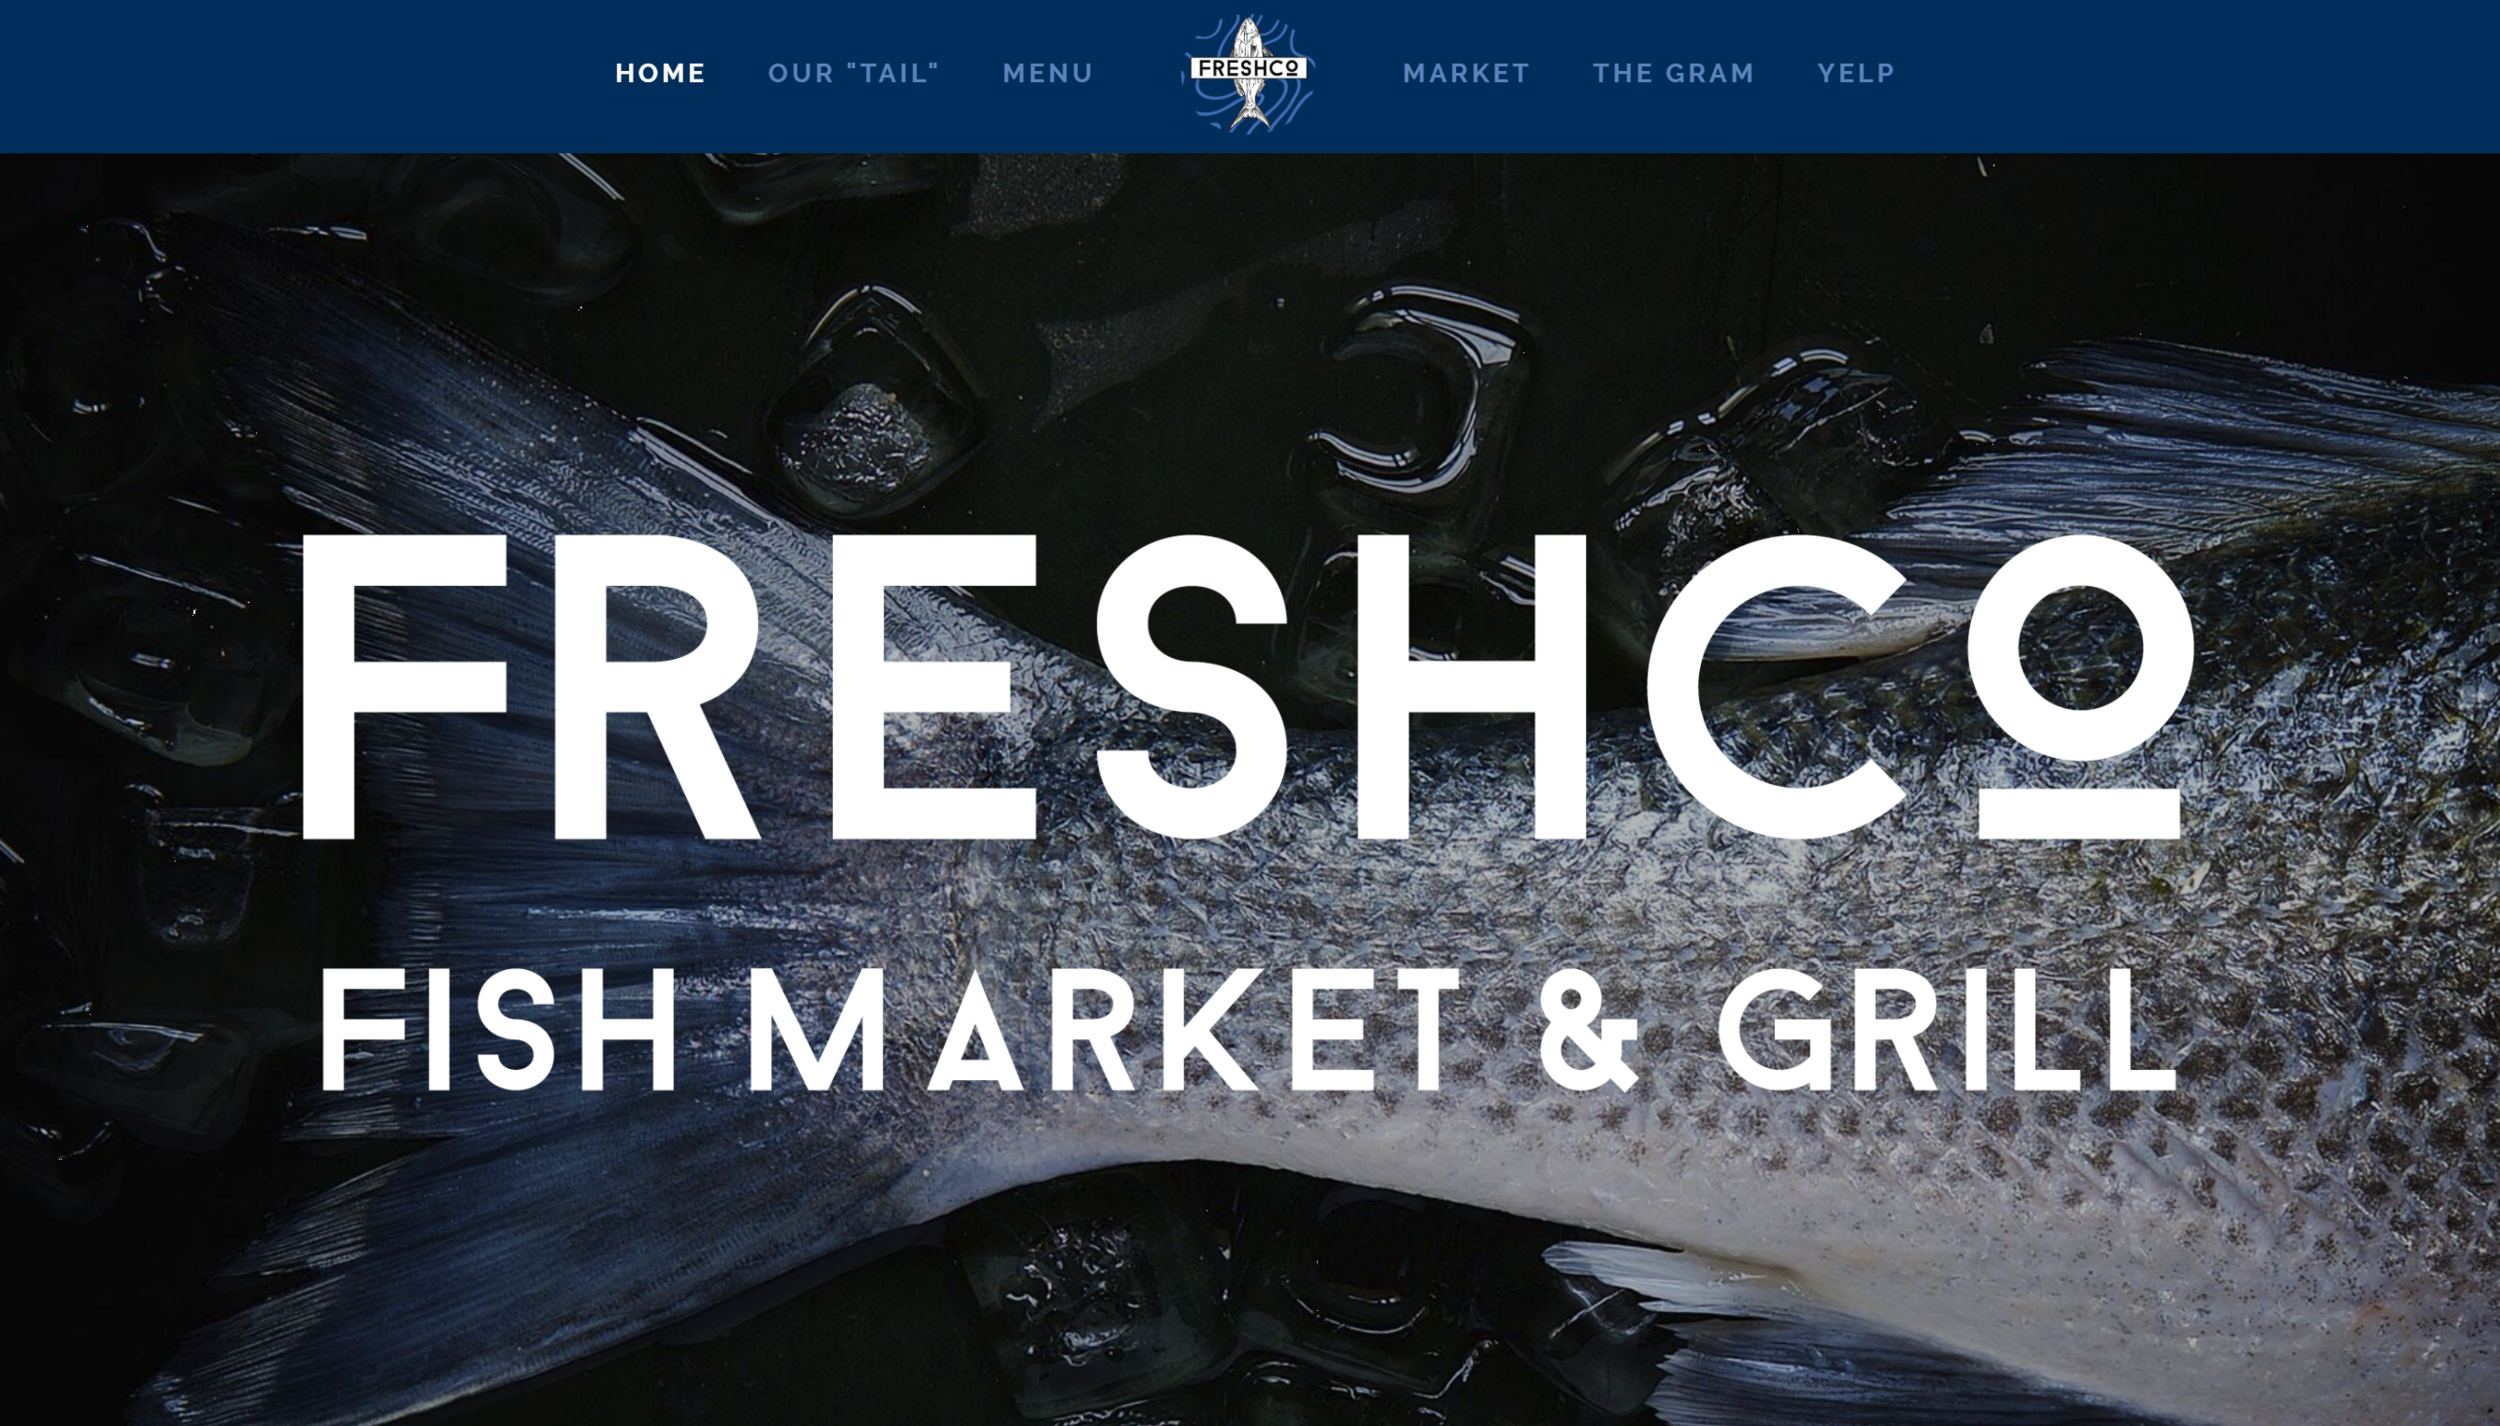 FreshCo Website designed by IAMagine